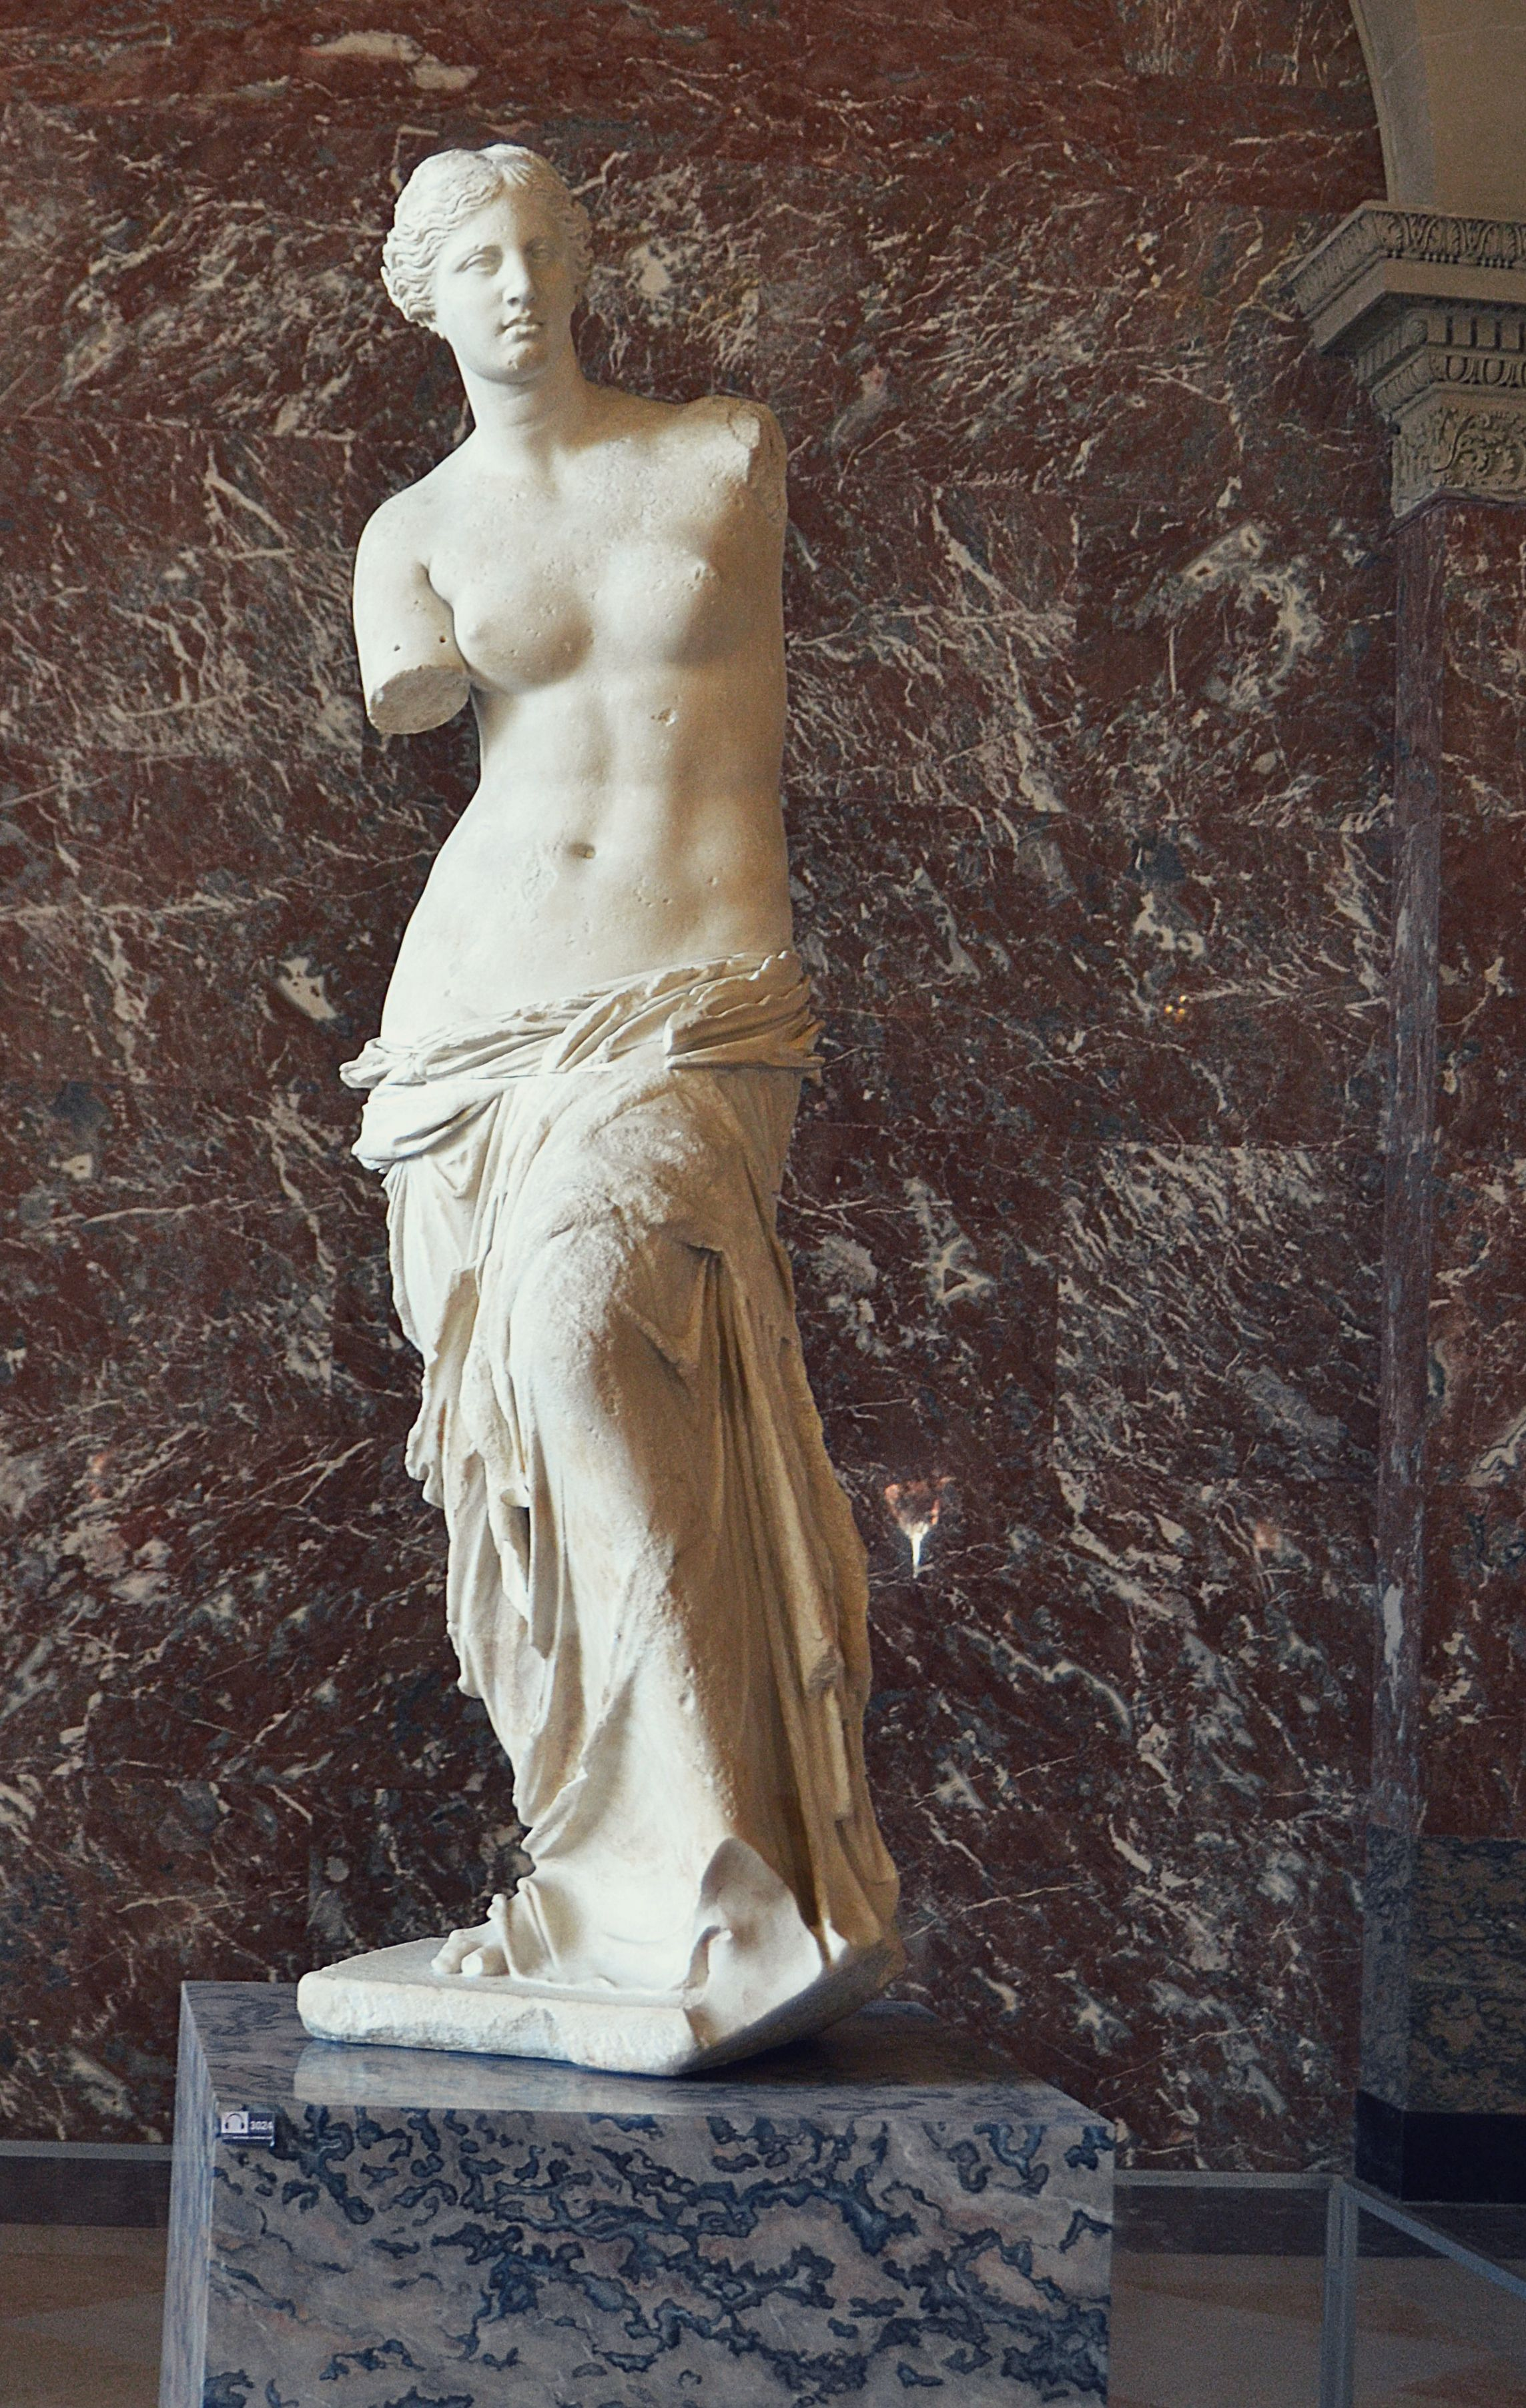 Venus de Milo. Louvre. Paris, France.